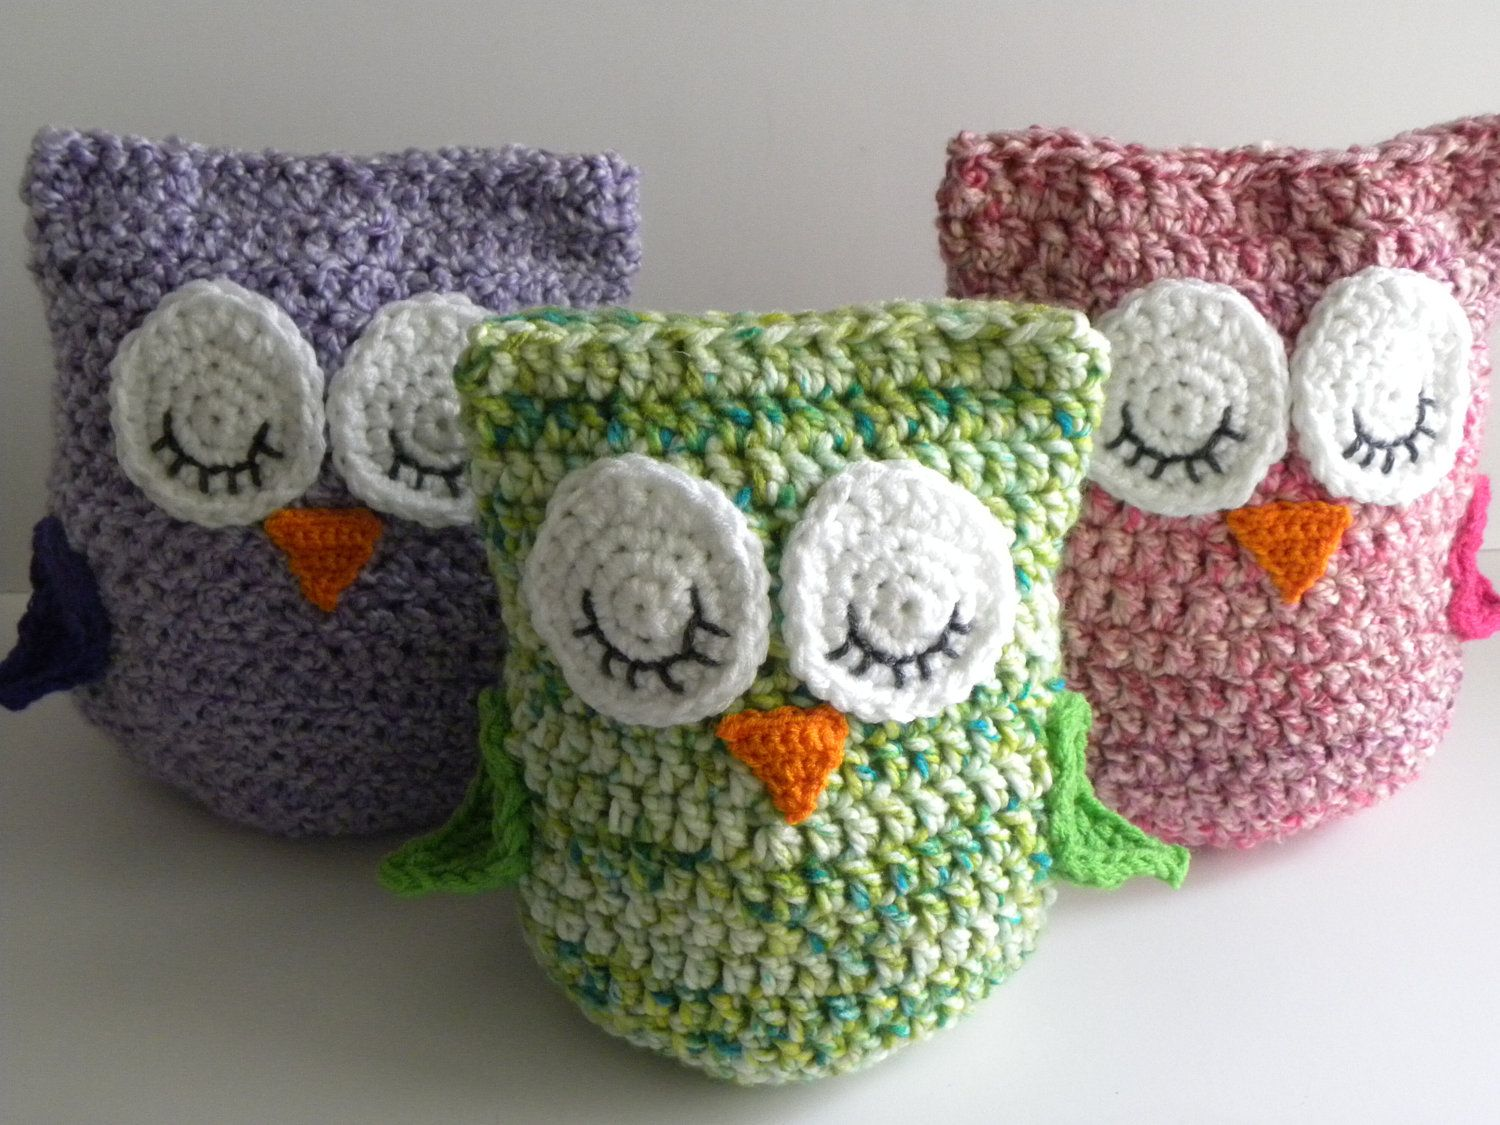 Crochet Pillows | CROCHET PATTERN - "|1500|1125|?|f2a051185e871c6adf241610950425f1|False|UNLIKELY|0.321366548538208